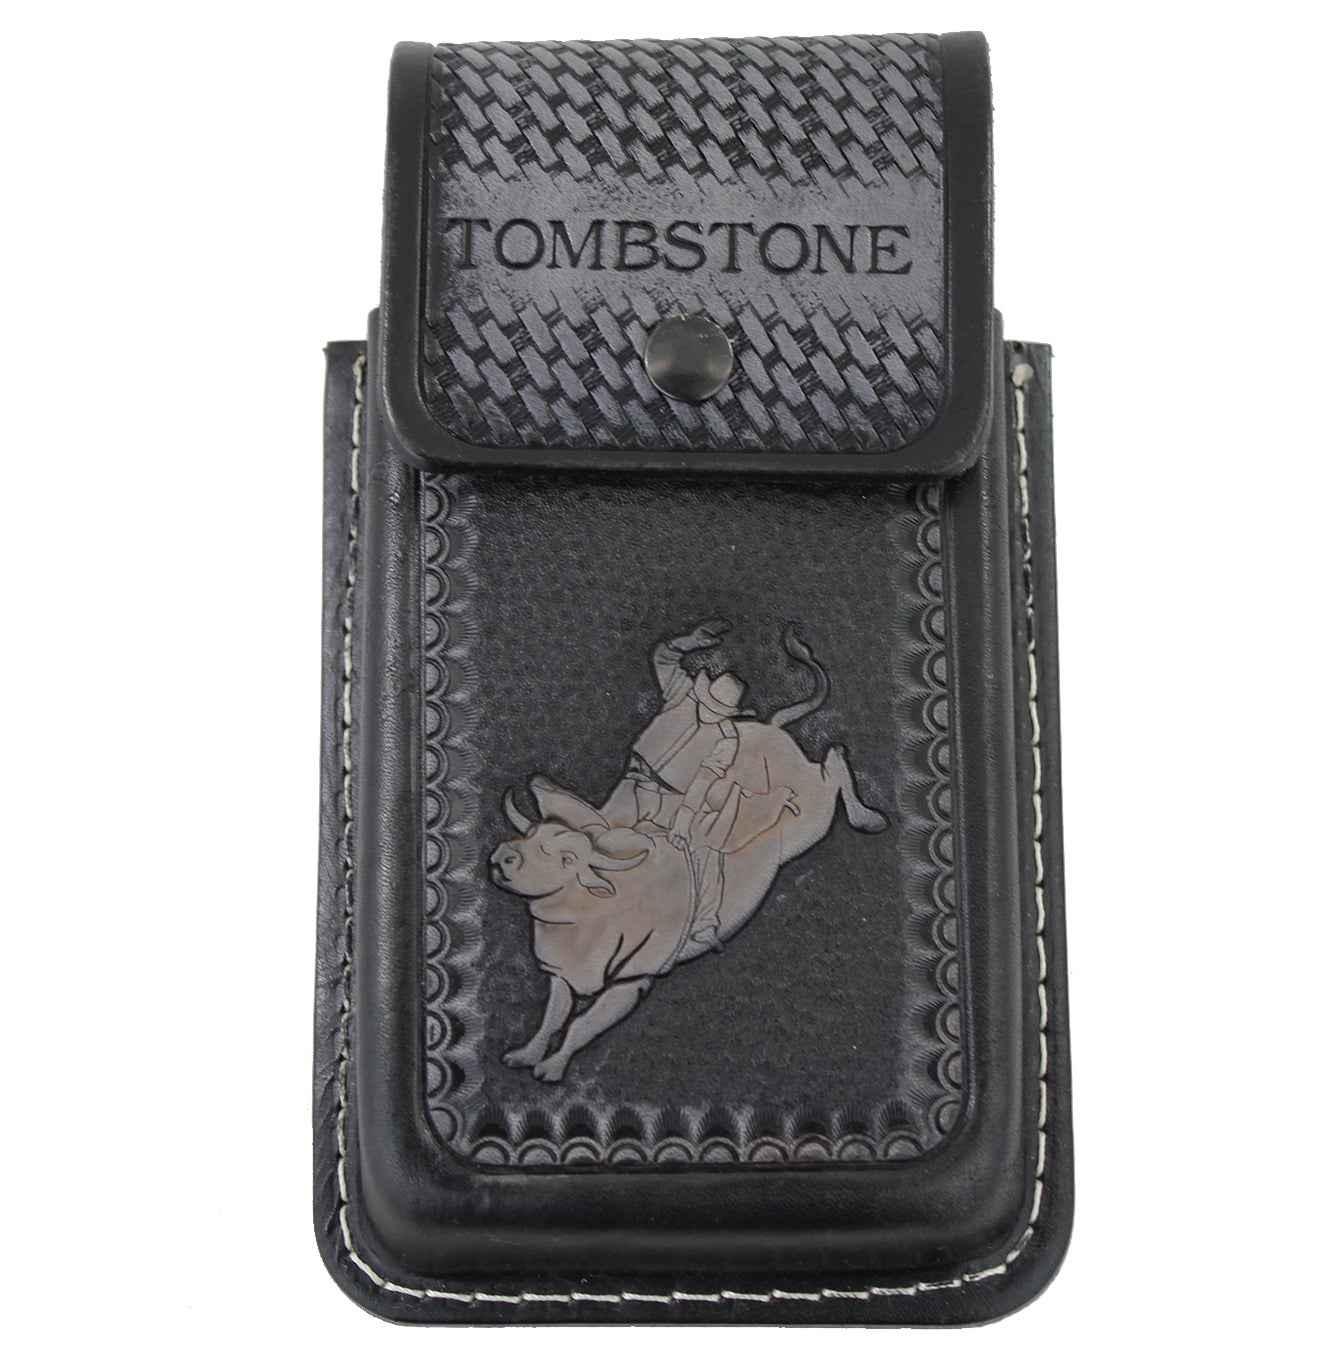 Tombstone Bull Rider Cell Phone Case